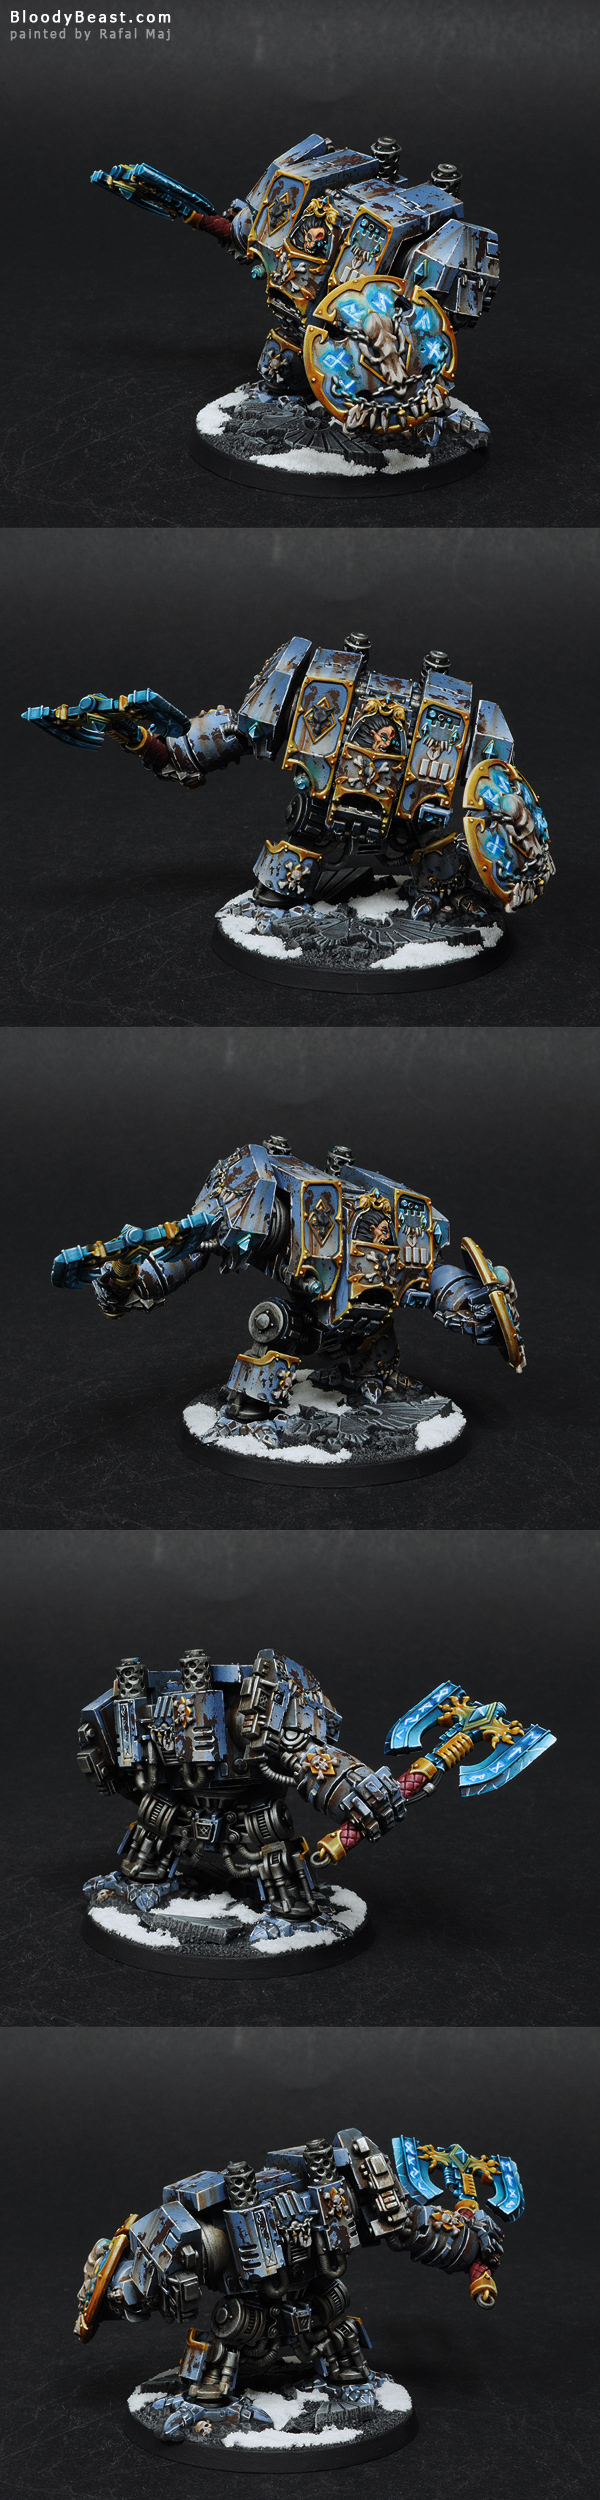 Space Wolves Venerabe Dreadnought painted by Rafal Maj (BloodyBeast.com)